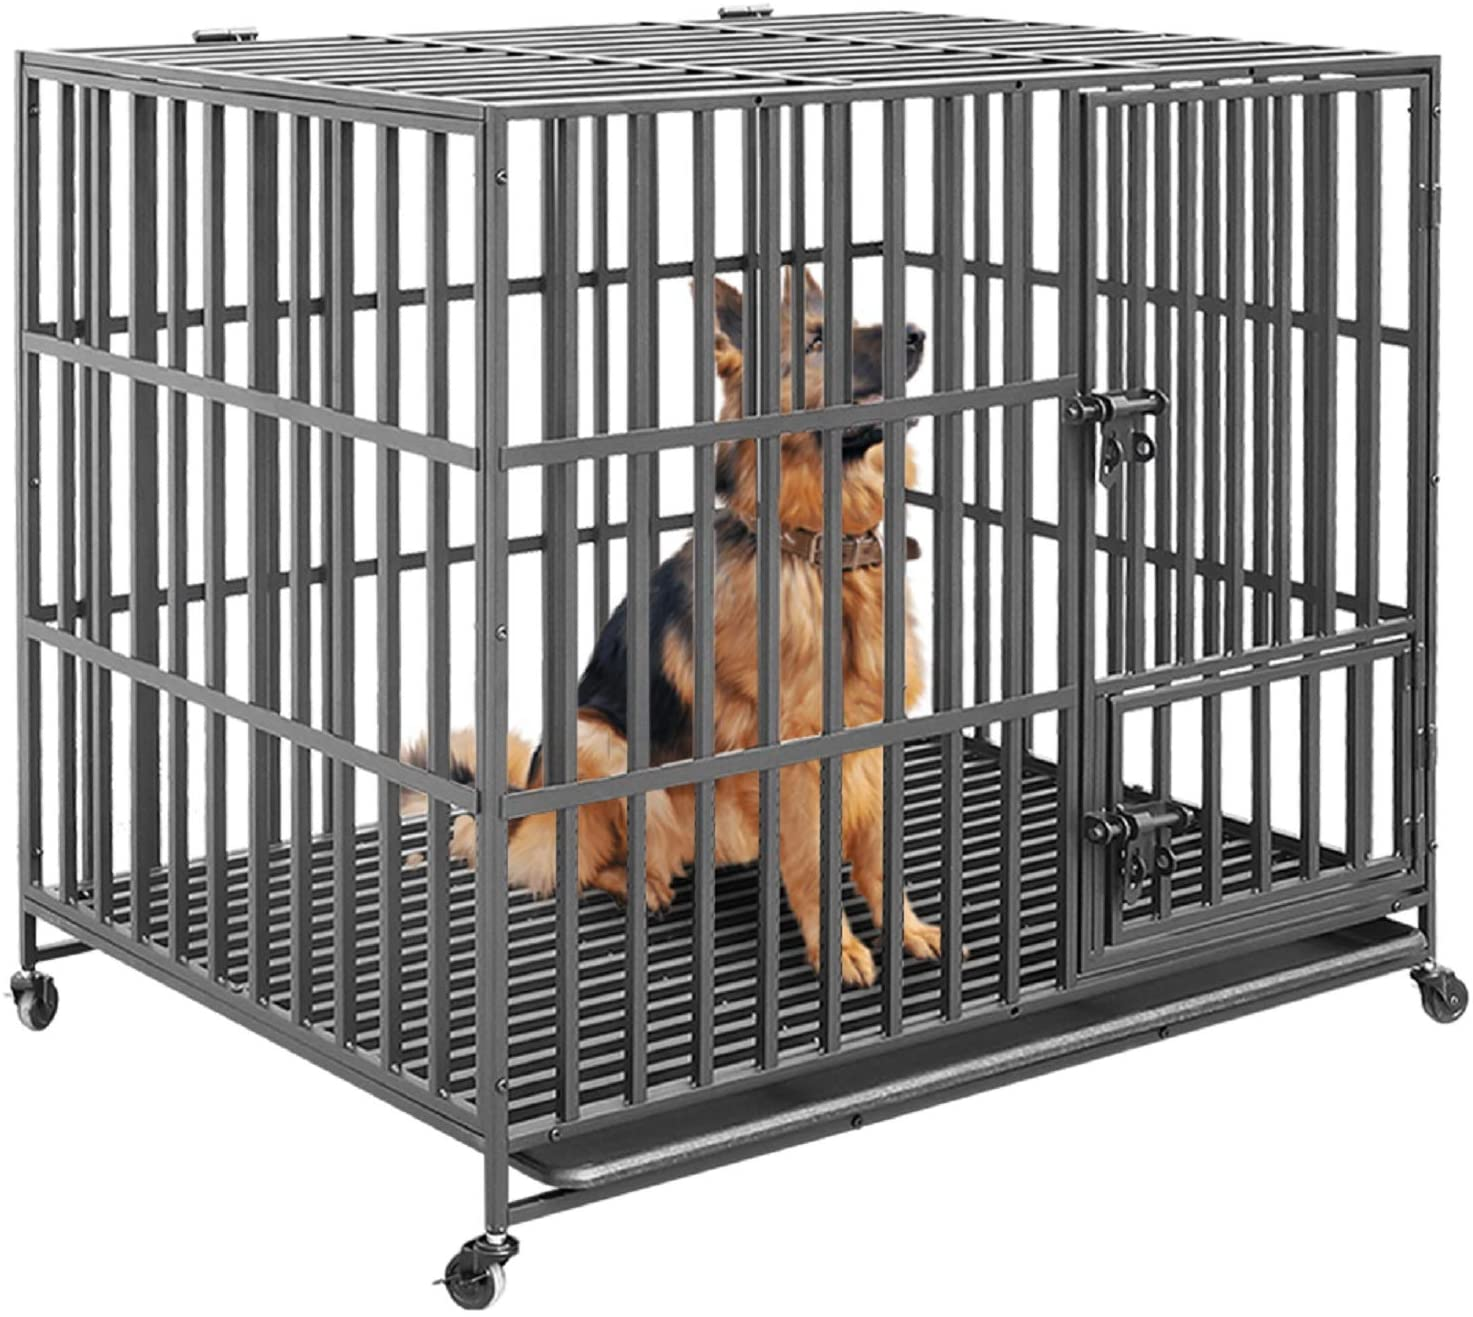 Bingopaw Strong Kennel Dog Crate